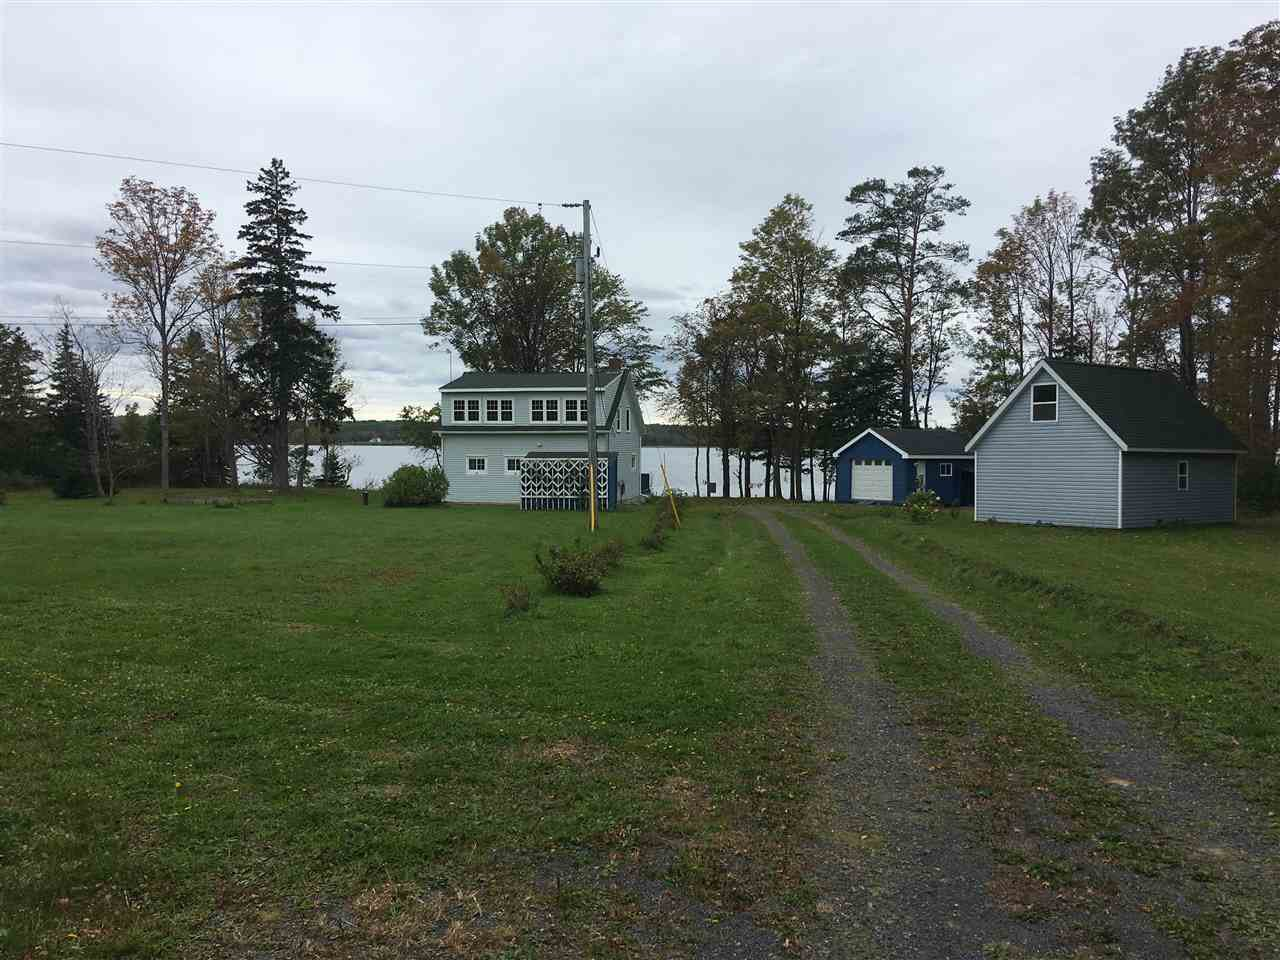 Main Photo: 5551 Pictou Landing Road in Pictou Landing: 108-Rural Pictou County Residential for sale (Northern Region)  : MLS®# 202005785